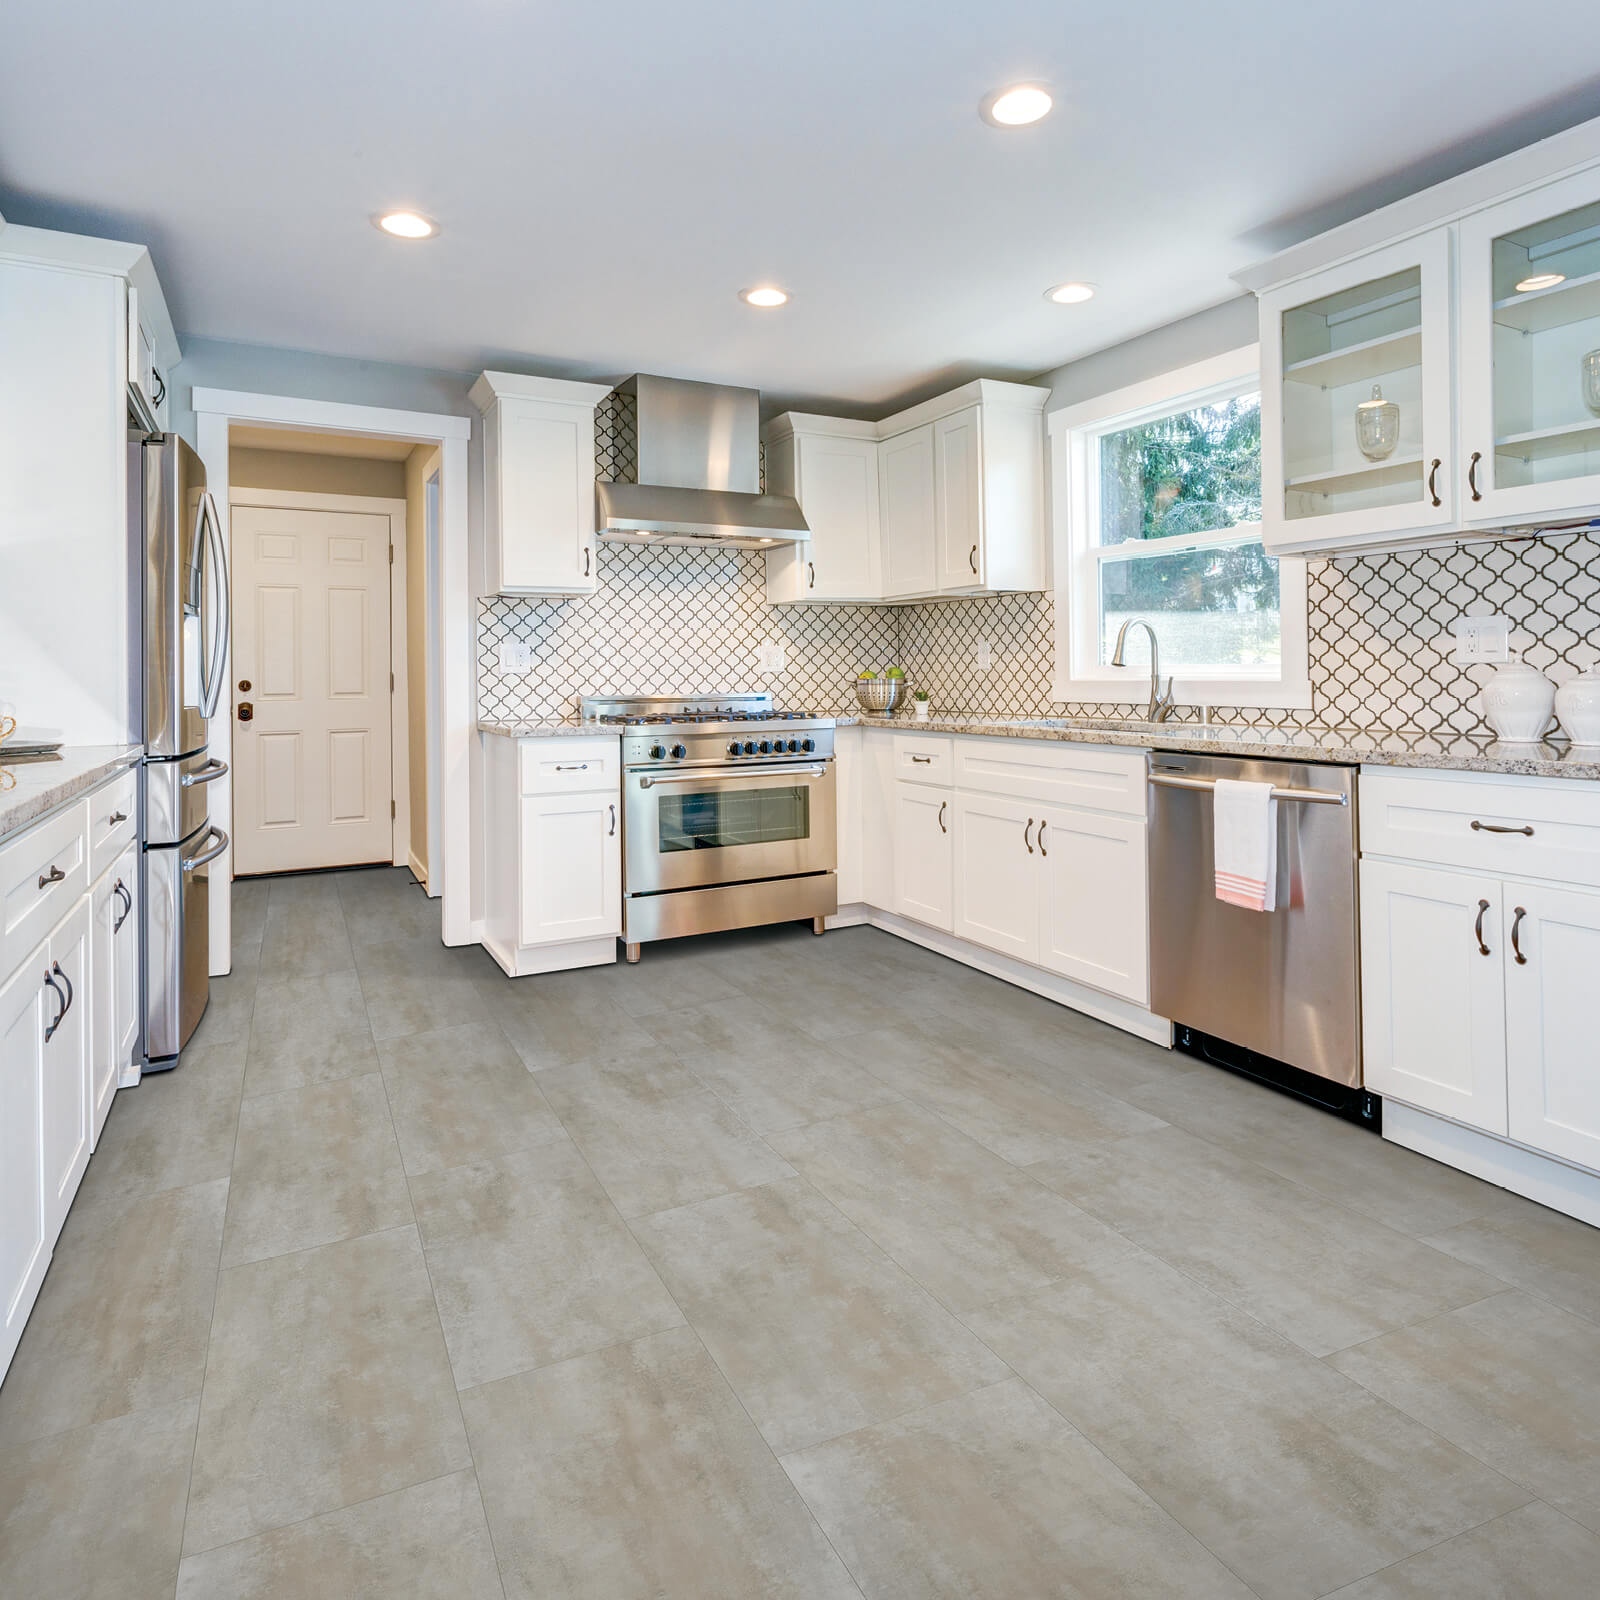 White cabinets of kitchen | Dolphin Carpet & Tile